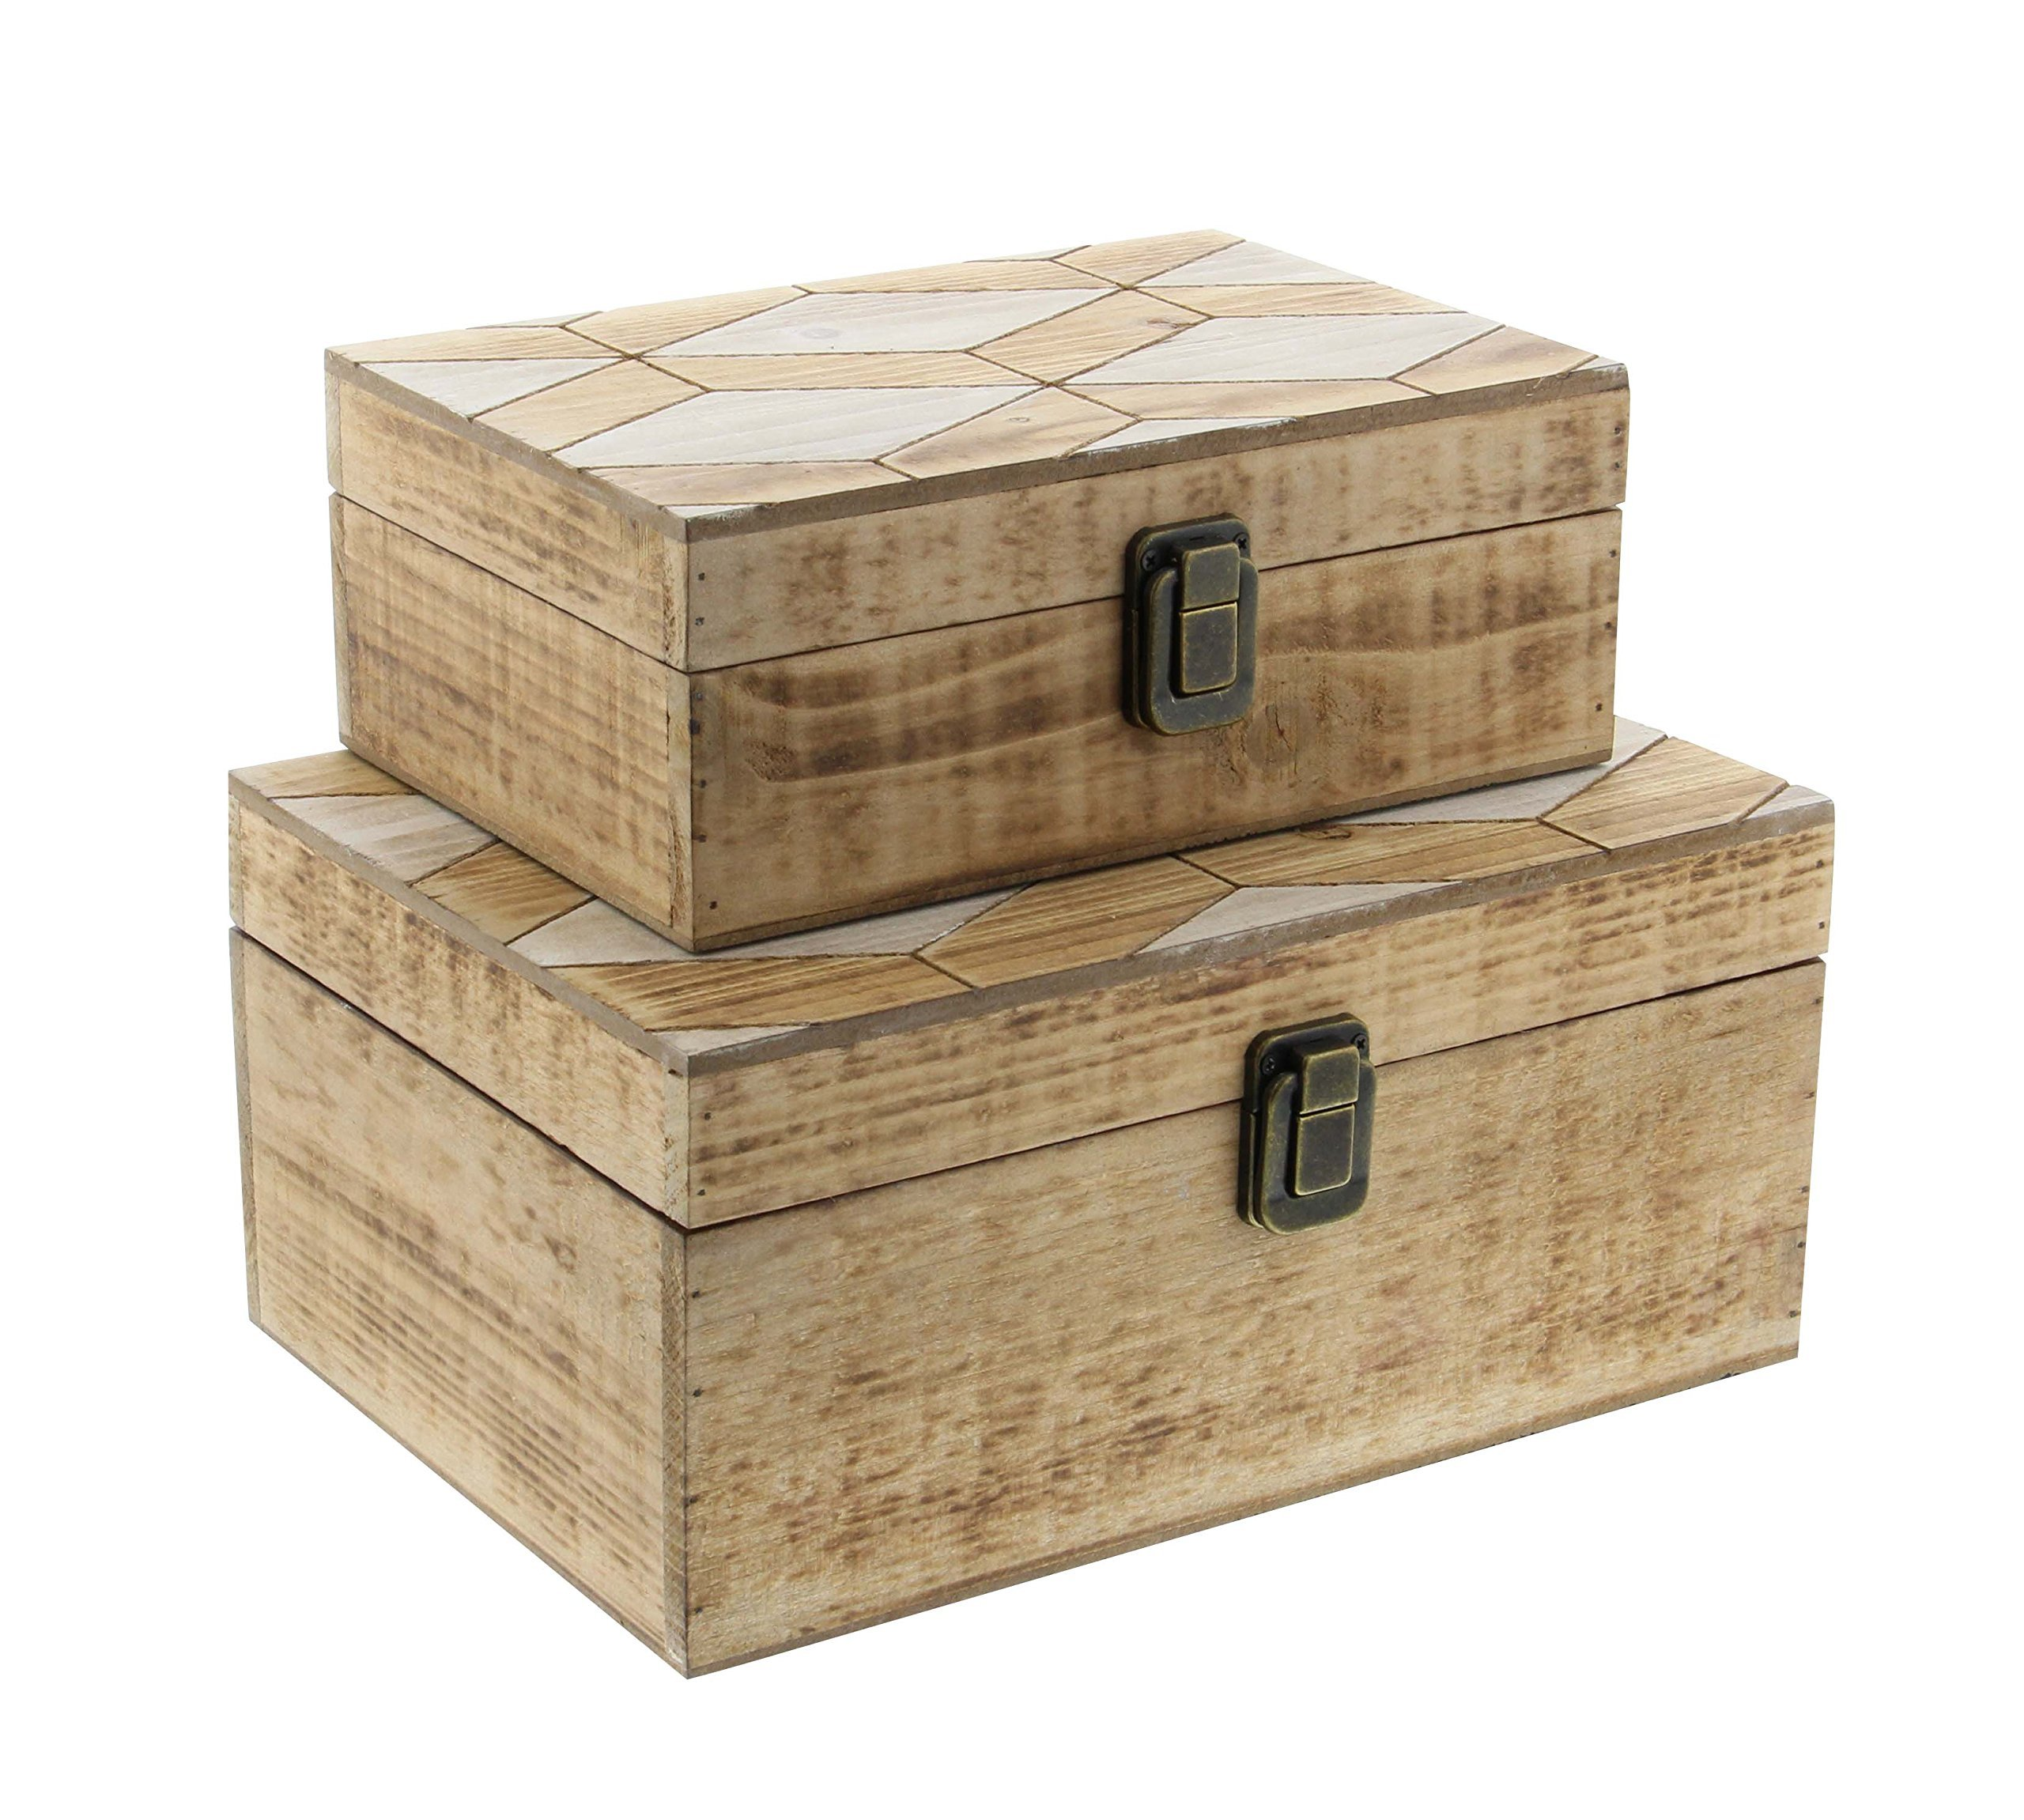 Deco 79 84305 Fir Wood Boxes (Set of 2), 10'' x 12'', Light-Brown/White/Brass-Finish